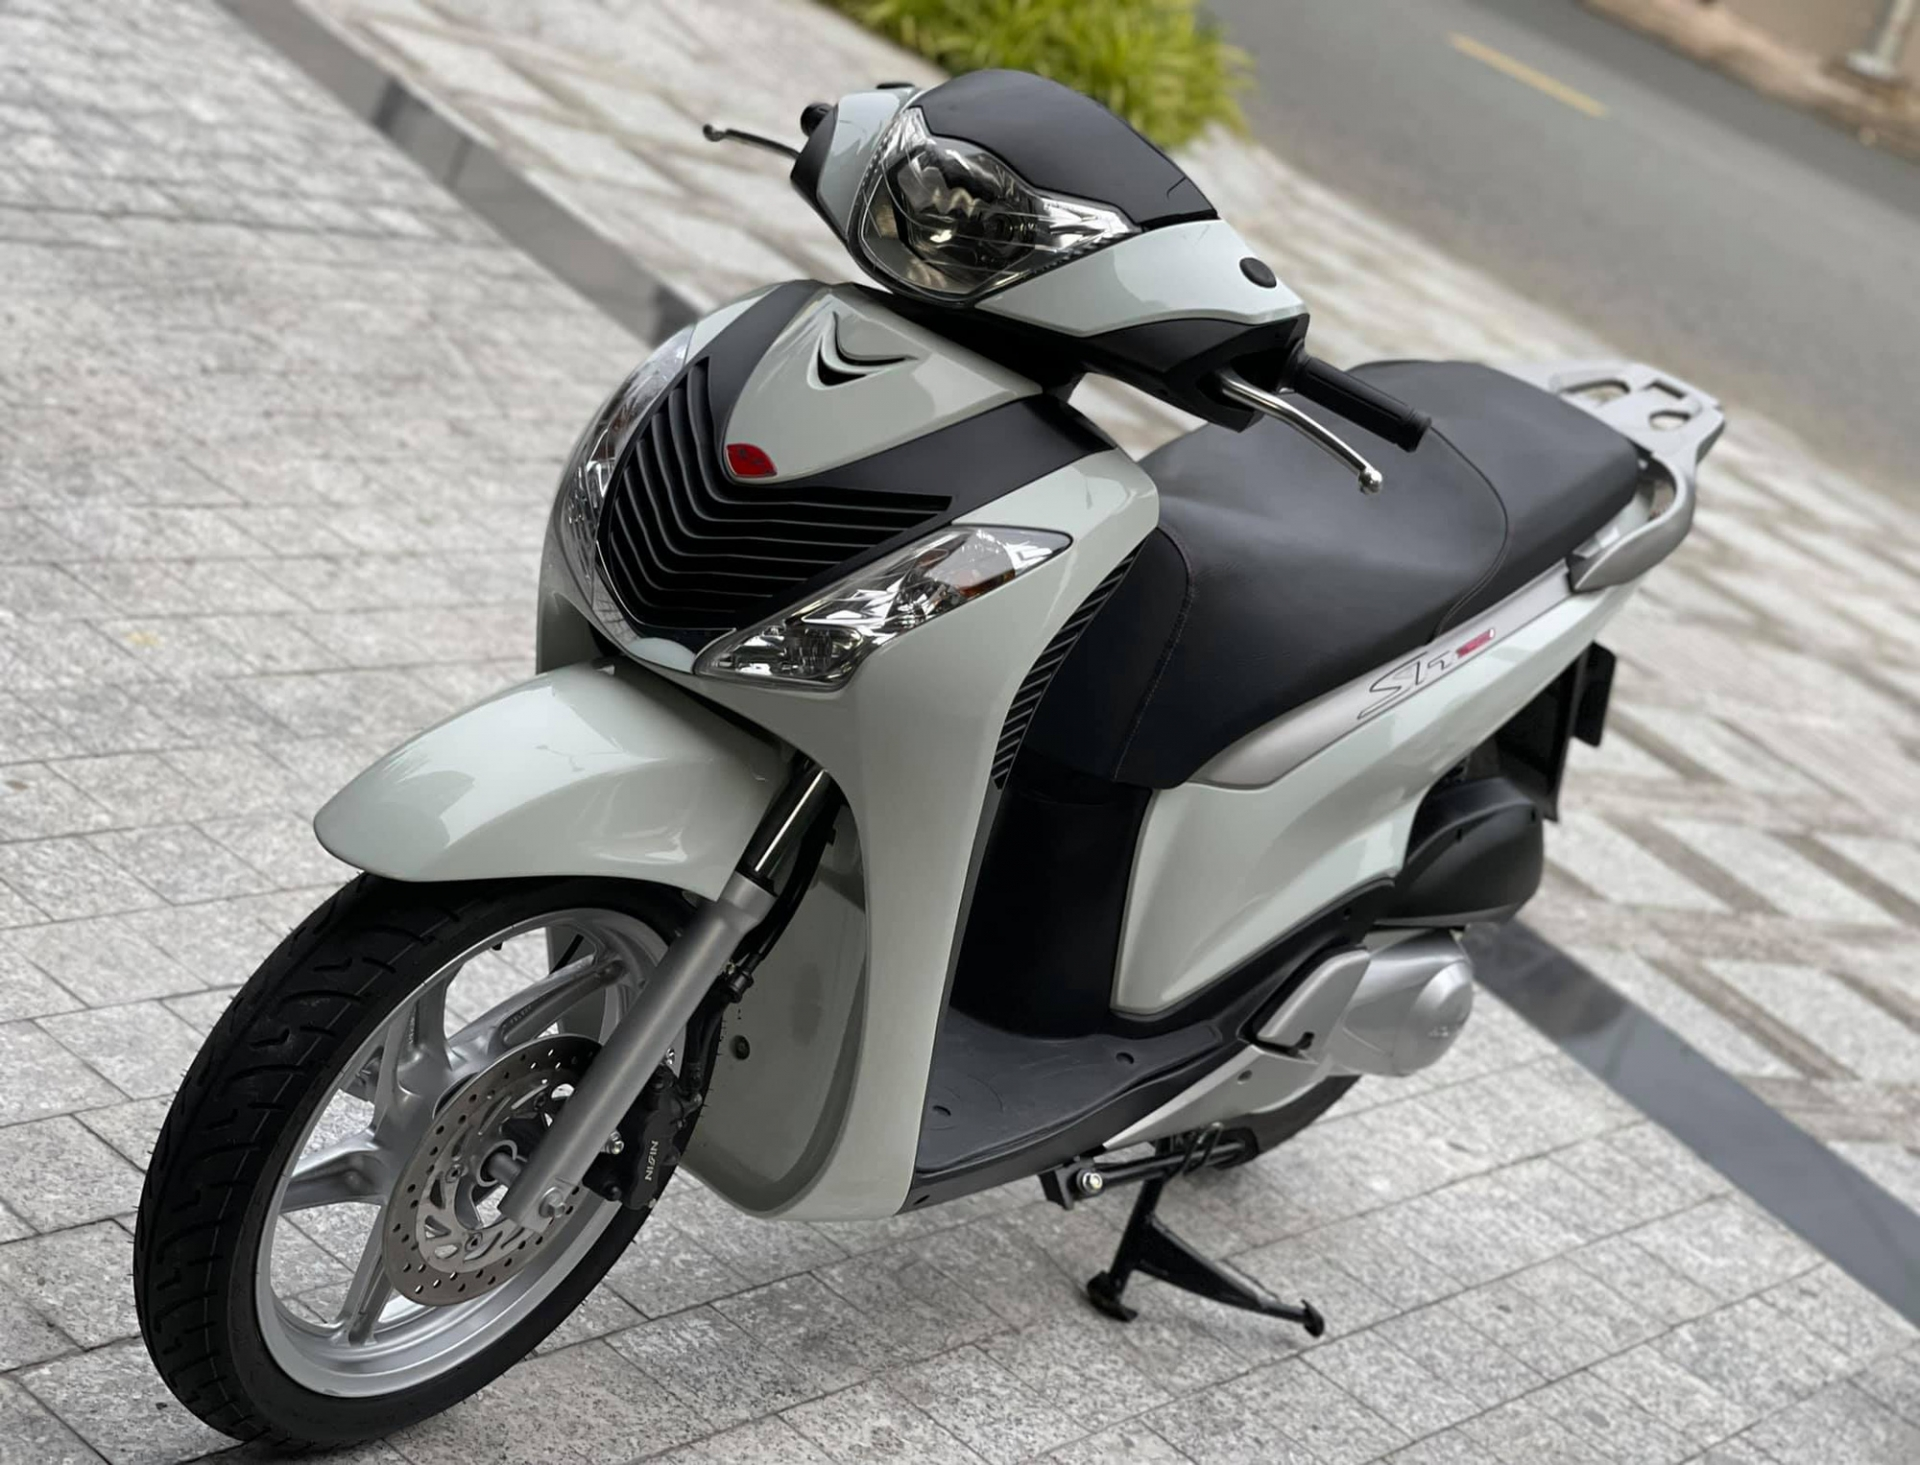 Old Honda SH 150i for sale for 1 billion, the car found a new owner after only 4 days 2